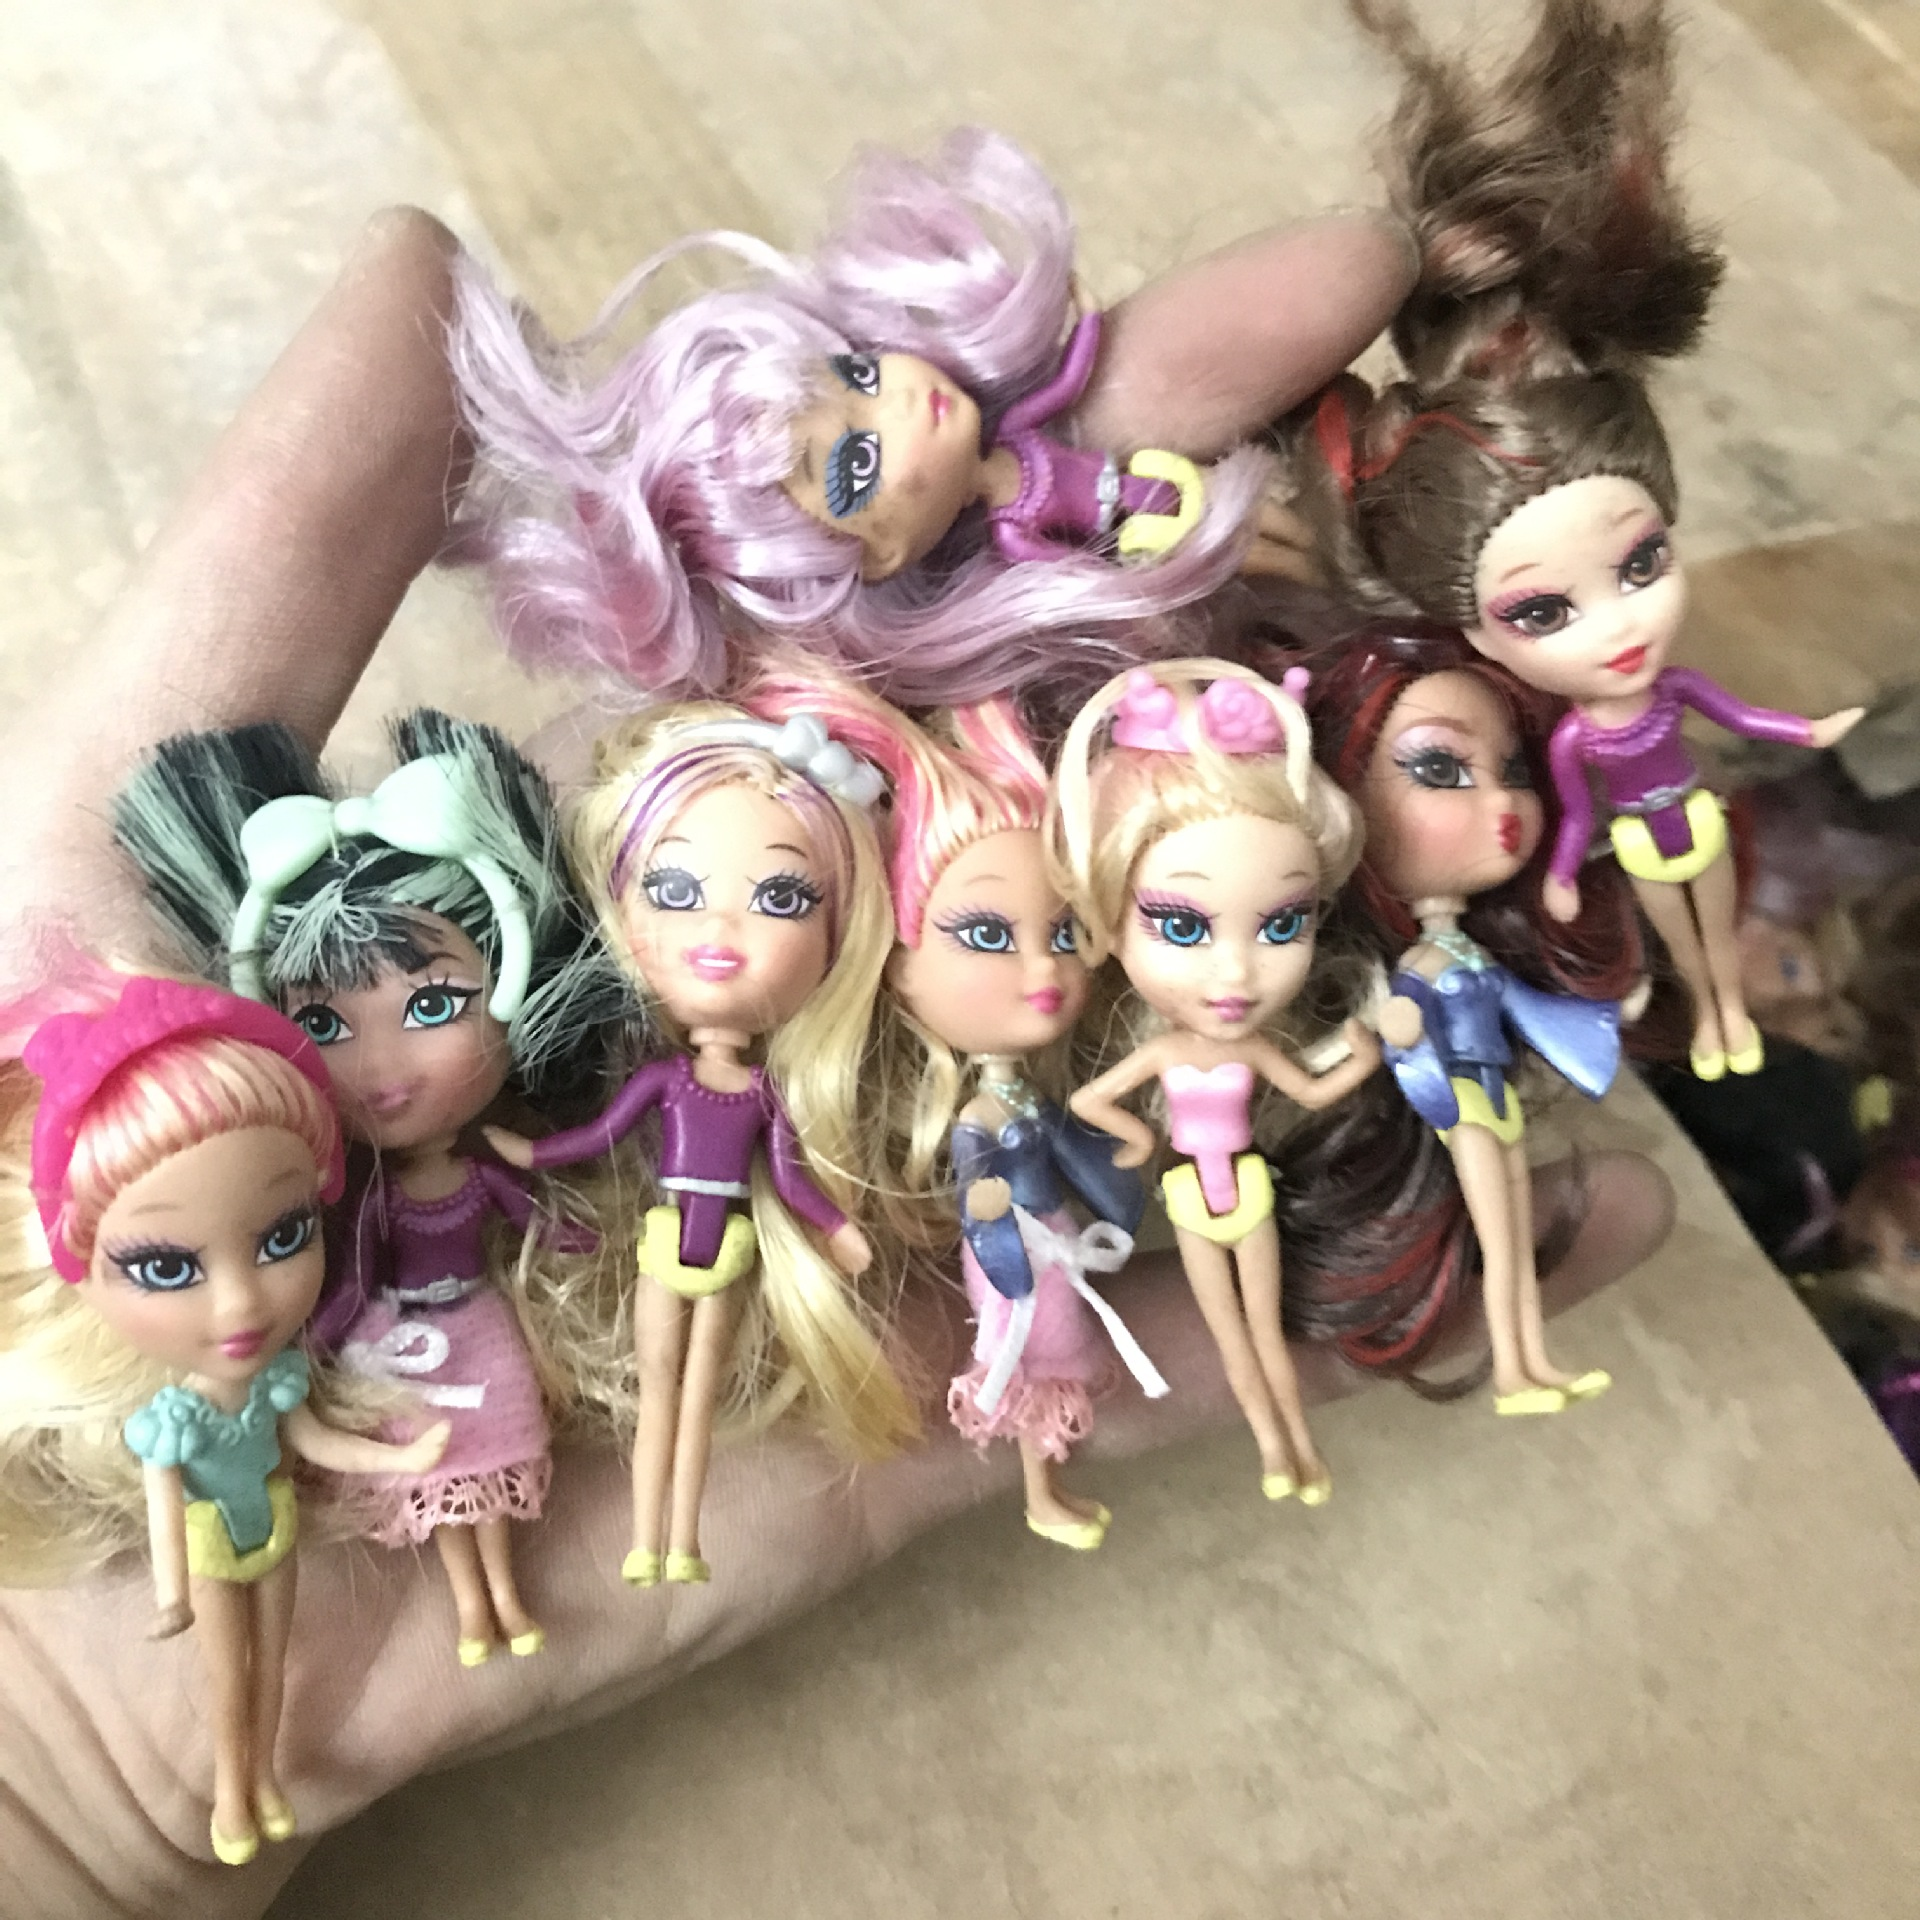 Cute Mini Princess Doll Play House Baby Doll Joint Fashion Girl DIY Hand Made Material Toy Gift Collection